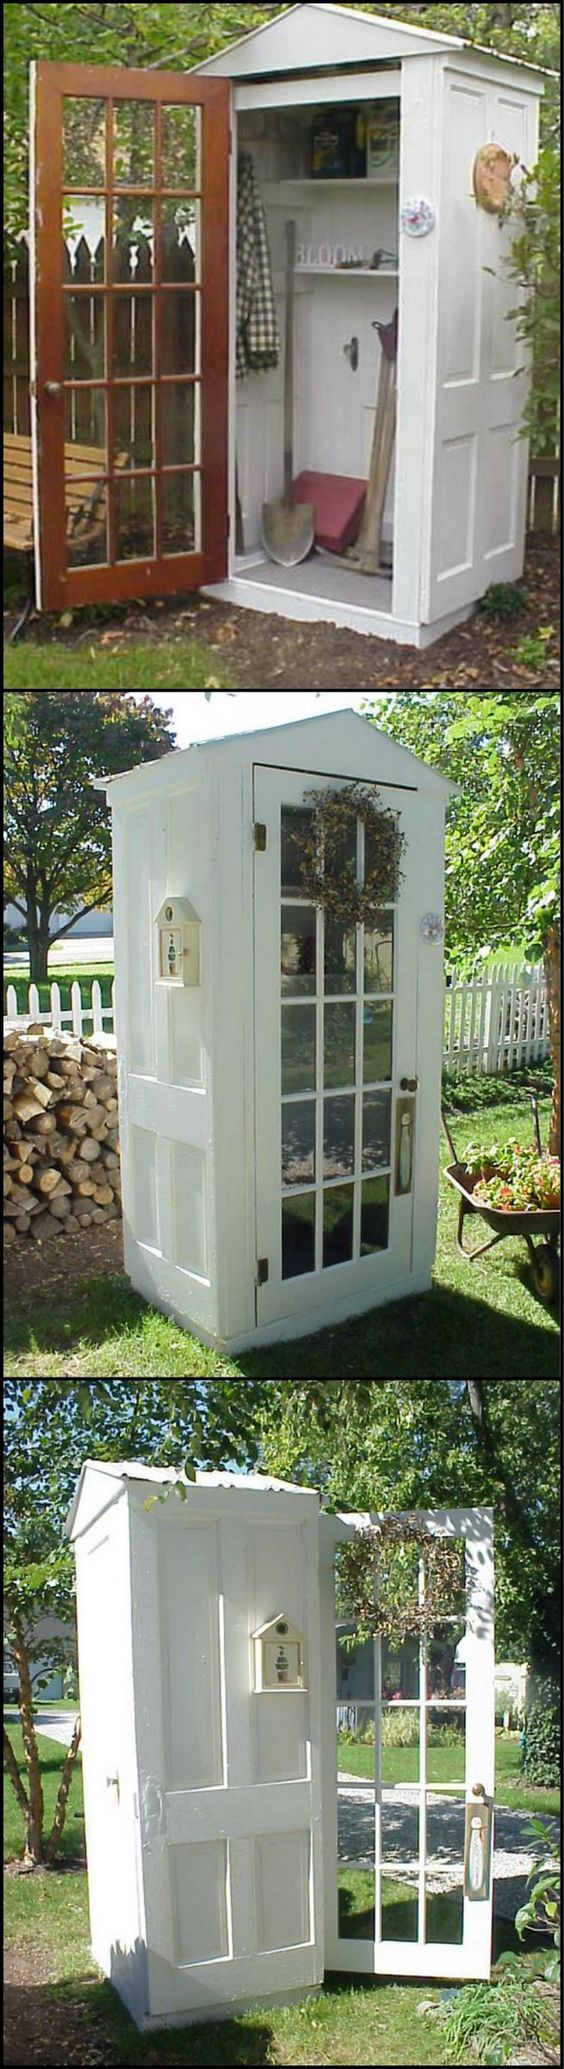 A Tool Shed Made from Repurposed Doors .